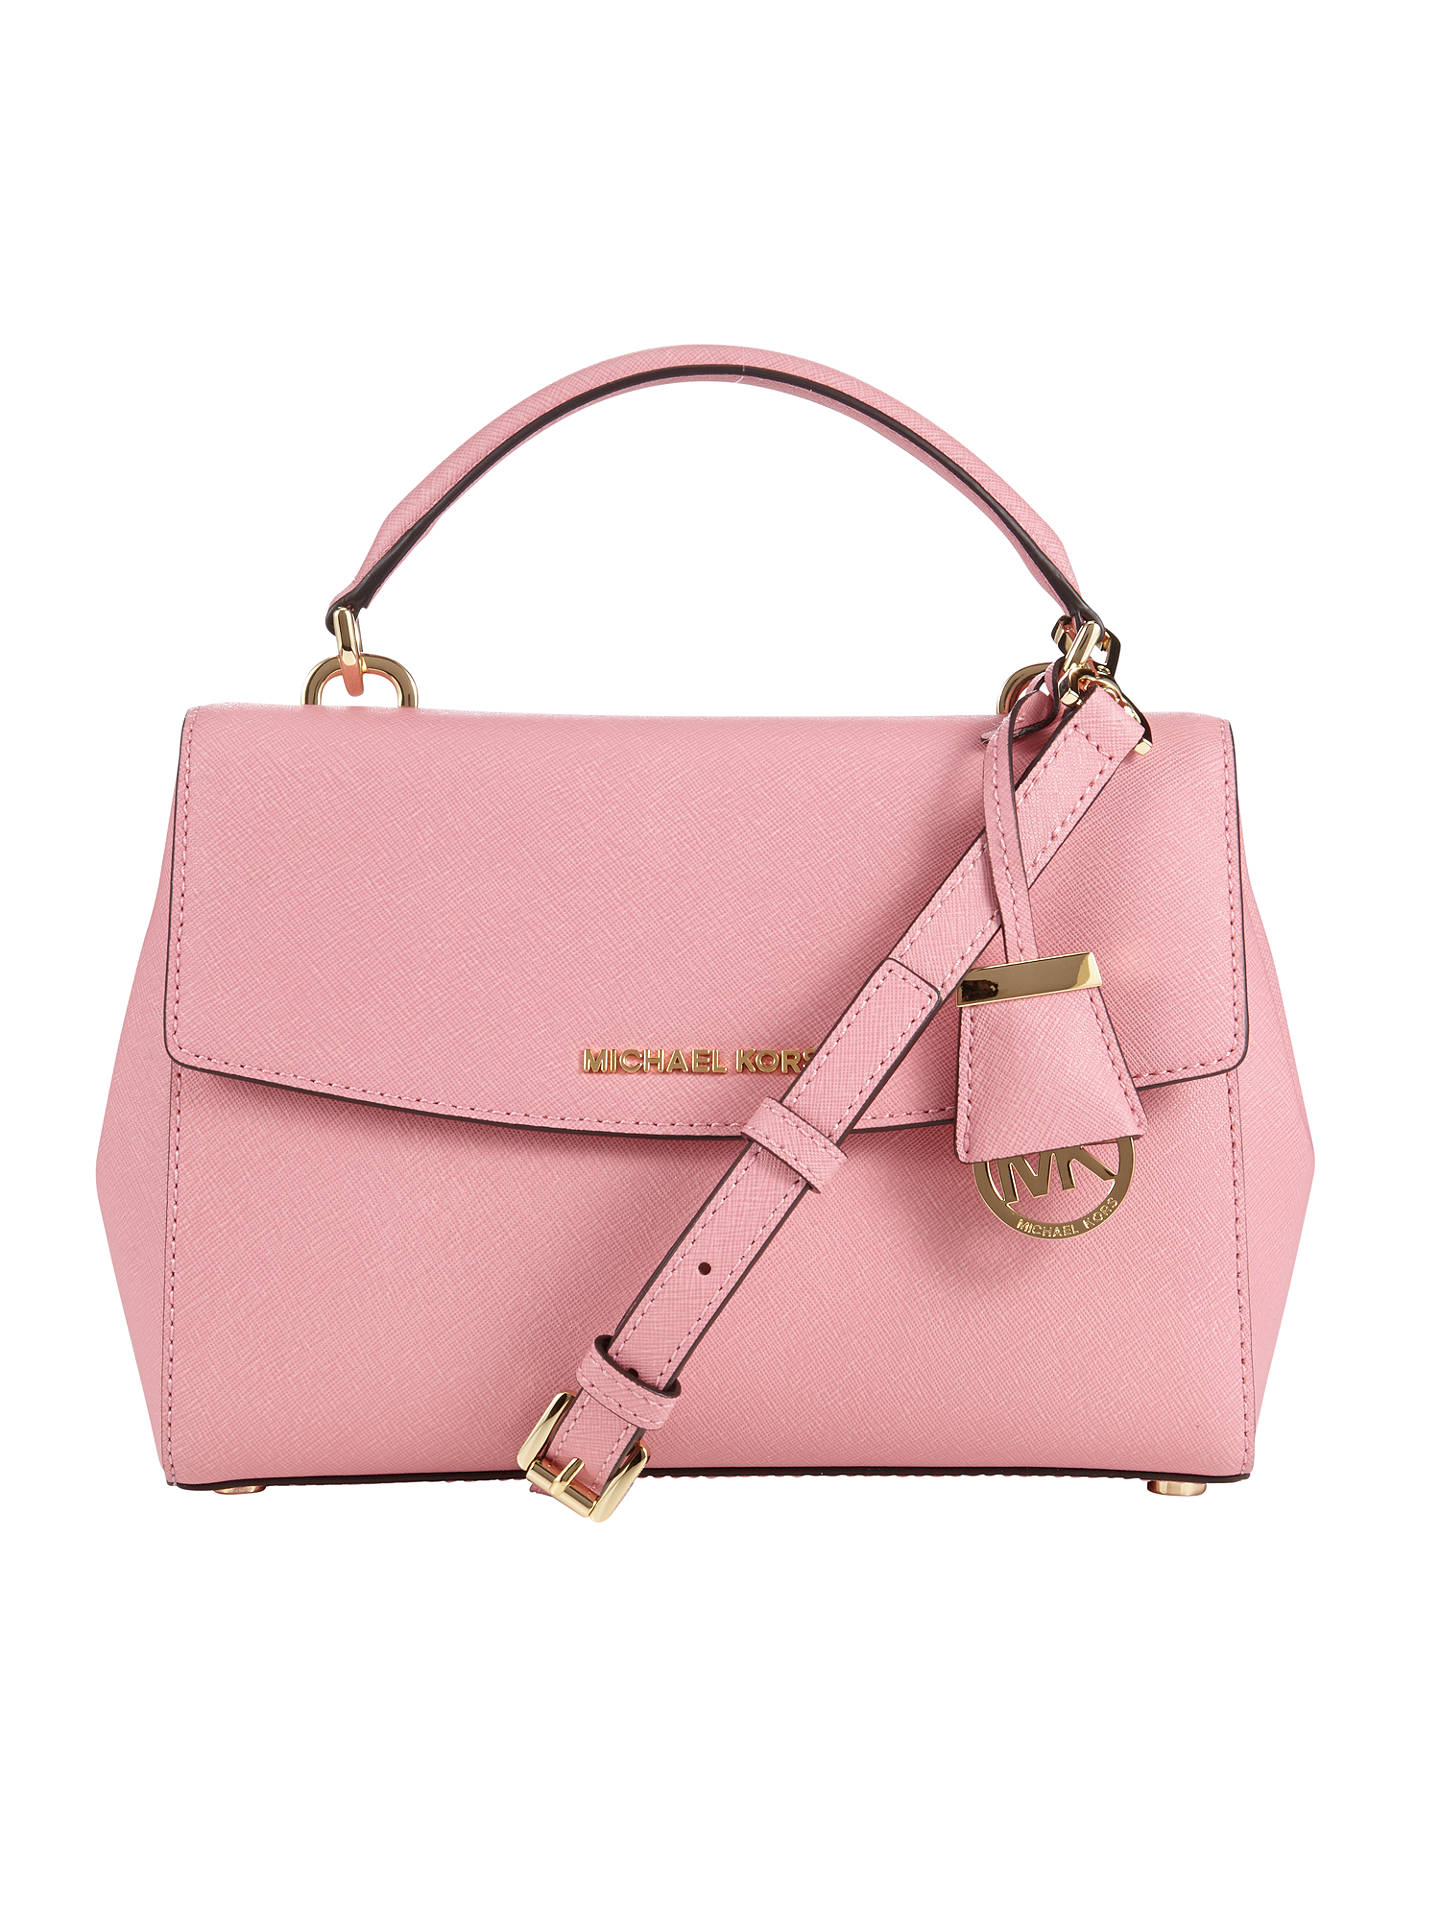 97b3b453217b Buy MICHAEL Michael Kors Ava Small Satchel, Misty Rose Online at  johnlewis.com ...